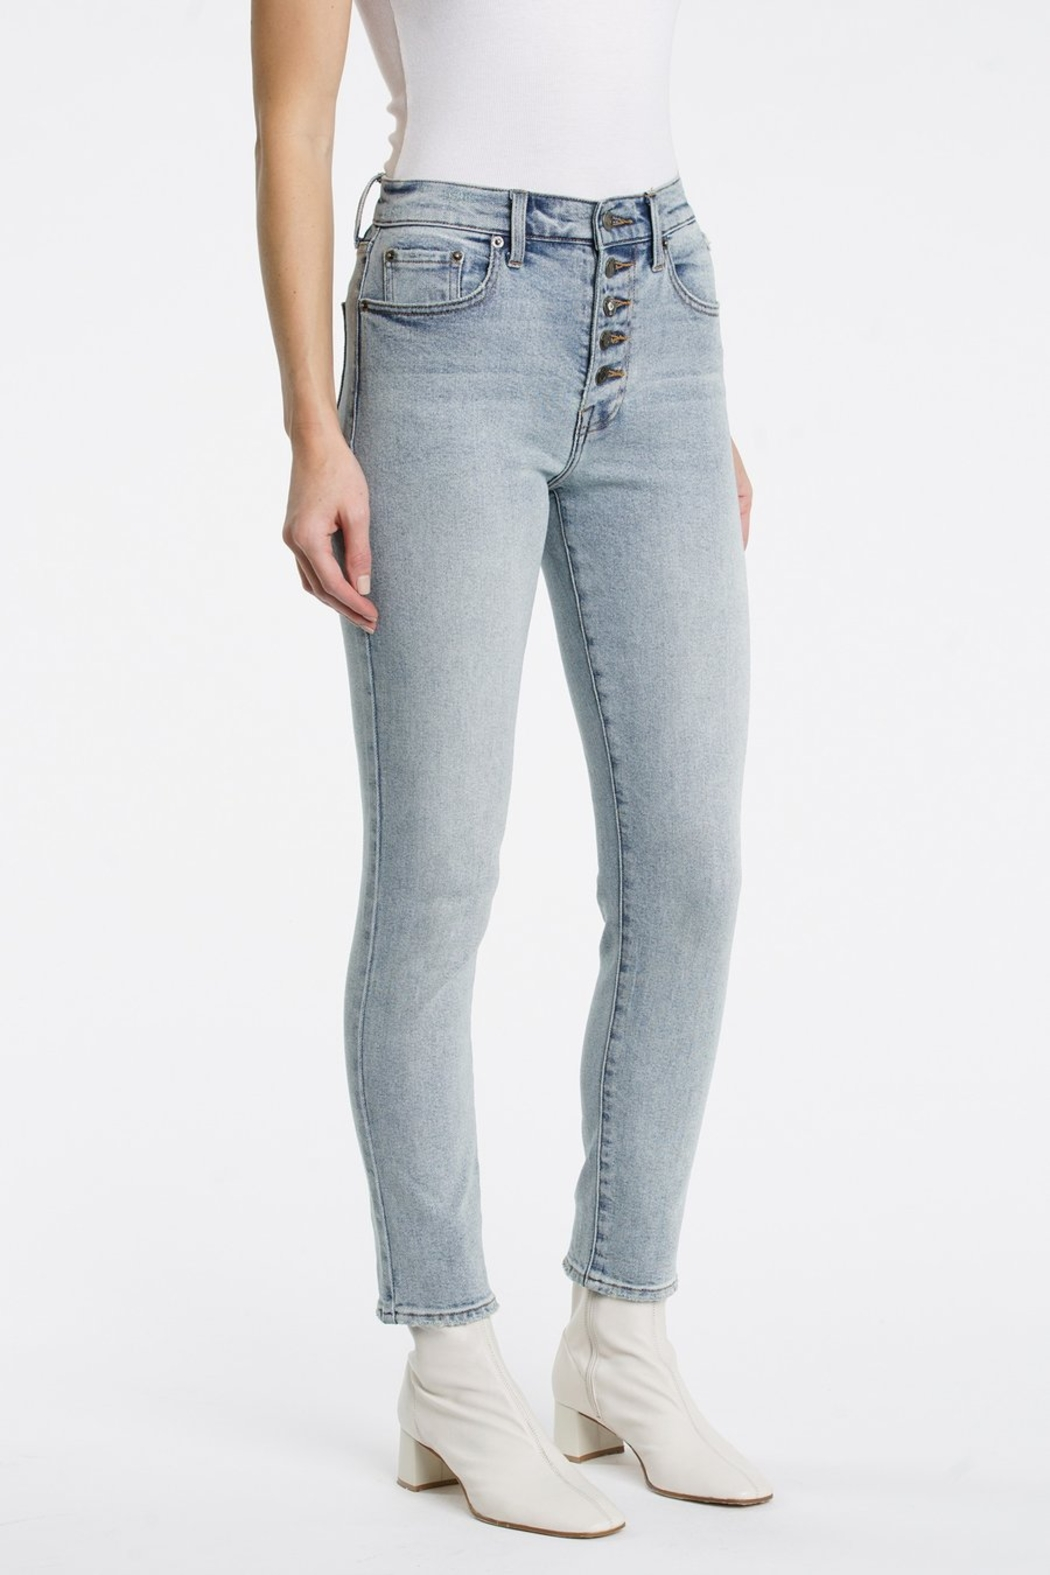 Pistola Cara Straight Leg Jeans in Jolie - Side Cropped Image